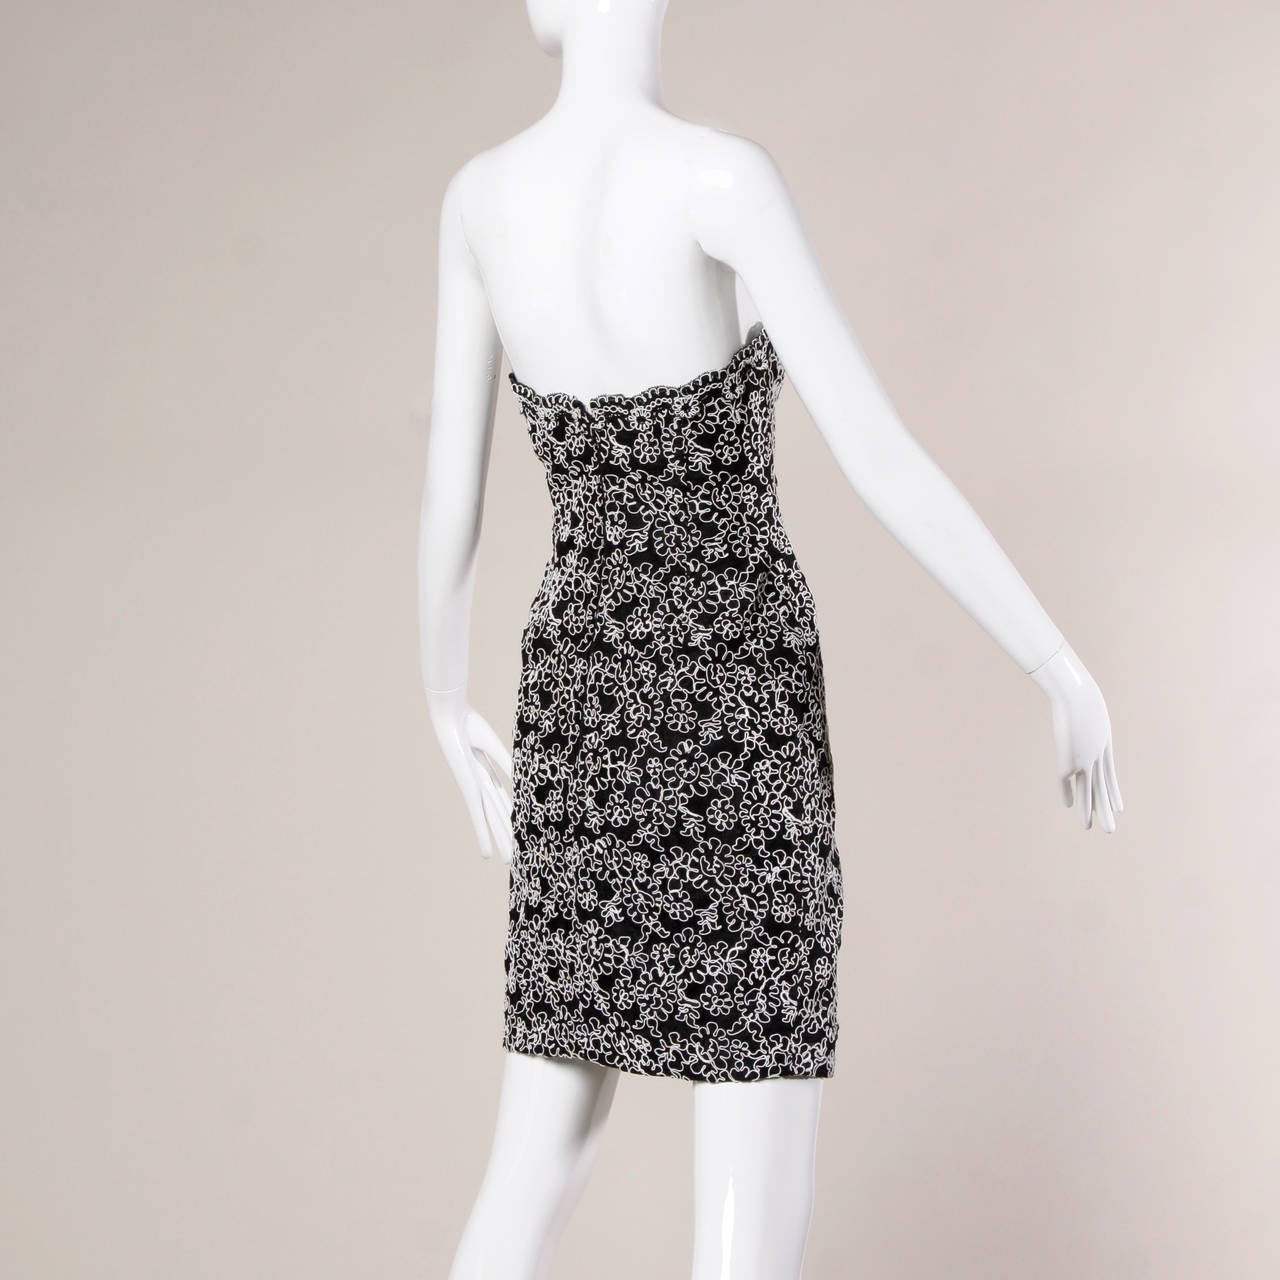 Bill Blass Vintage Black + White Lace Strapless Cocktail Dress For Sale 1